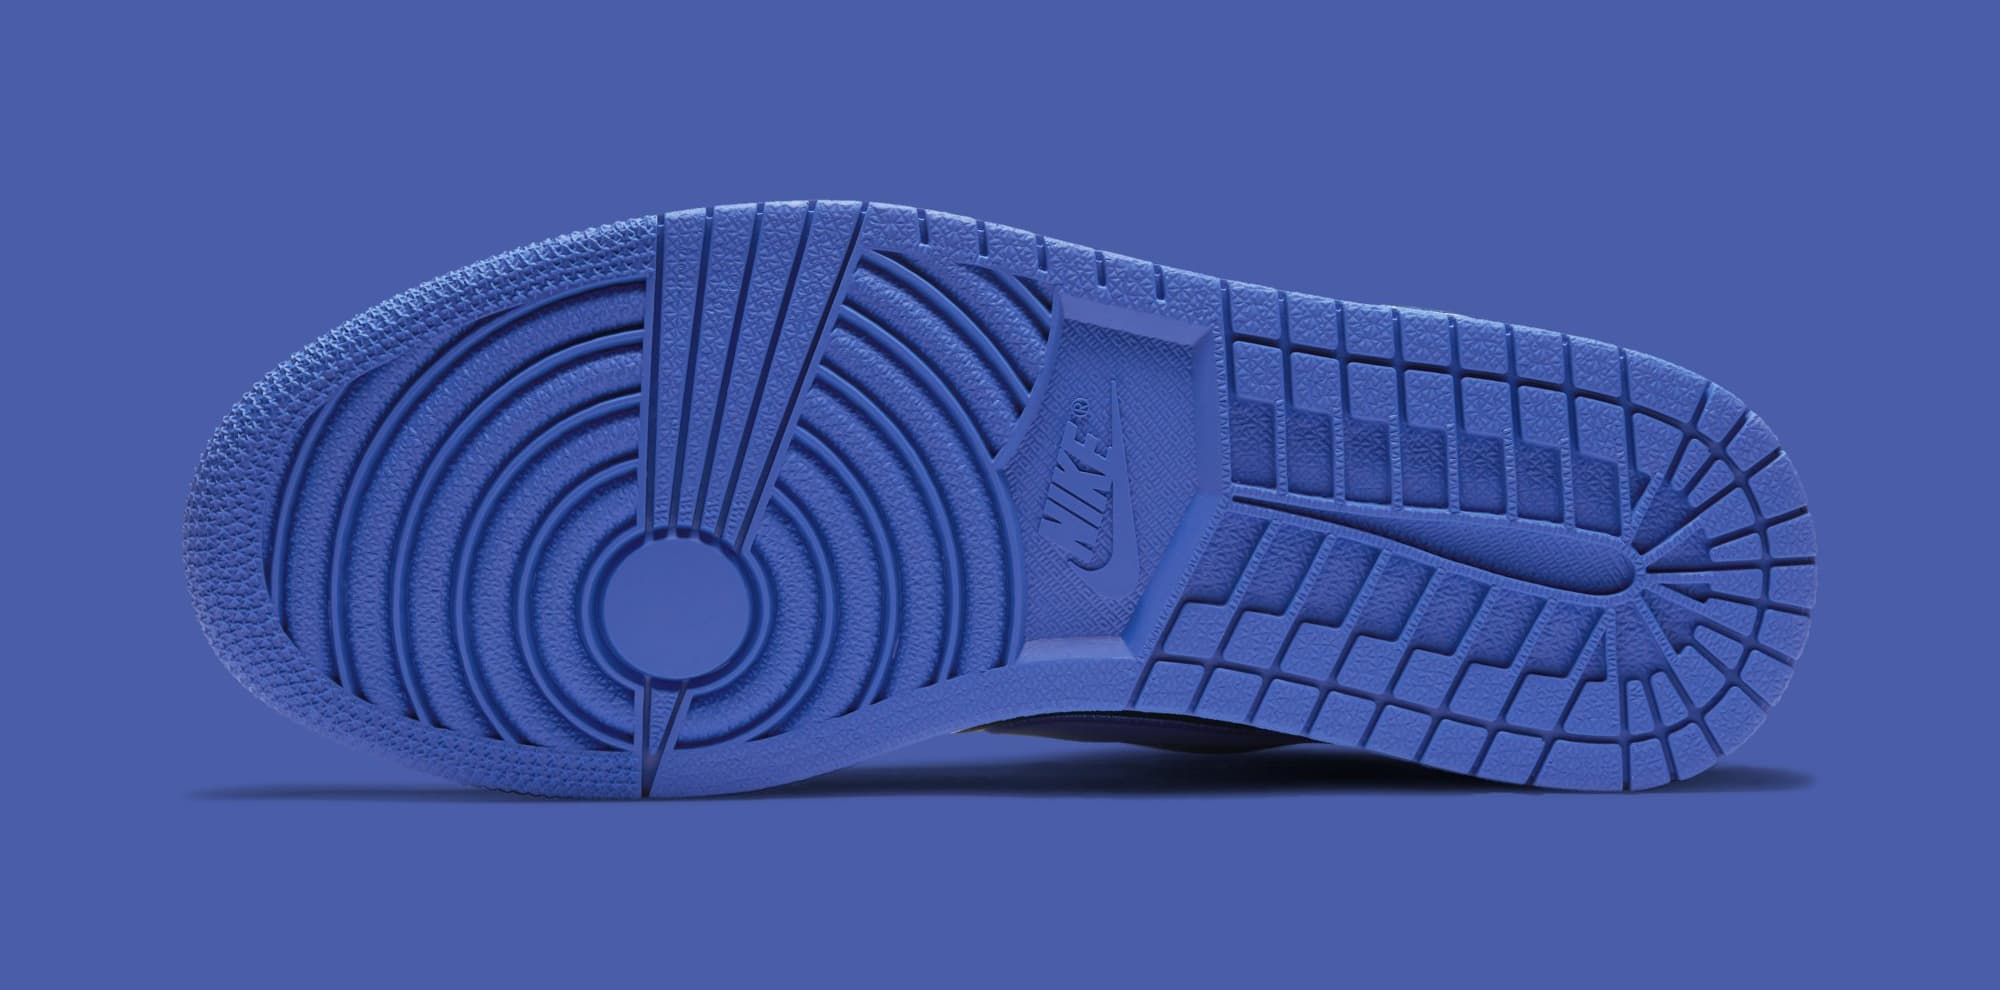 Air Jordan 1 Flyease 'Royal' CQ3835-041 Outsole